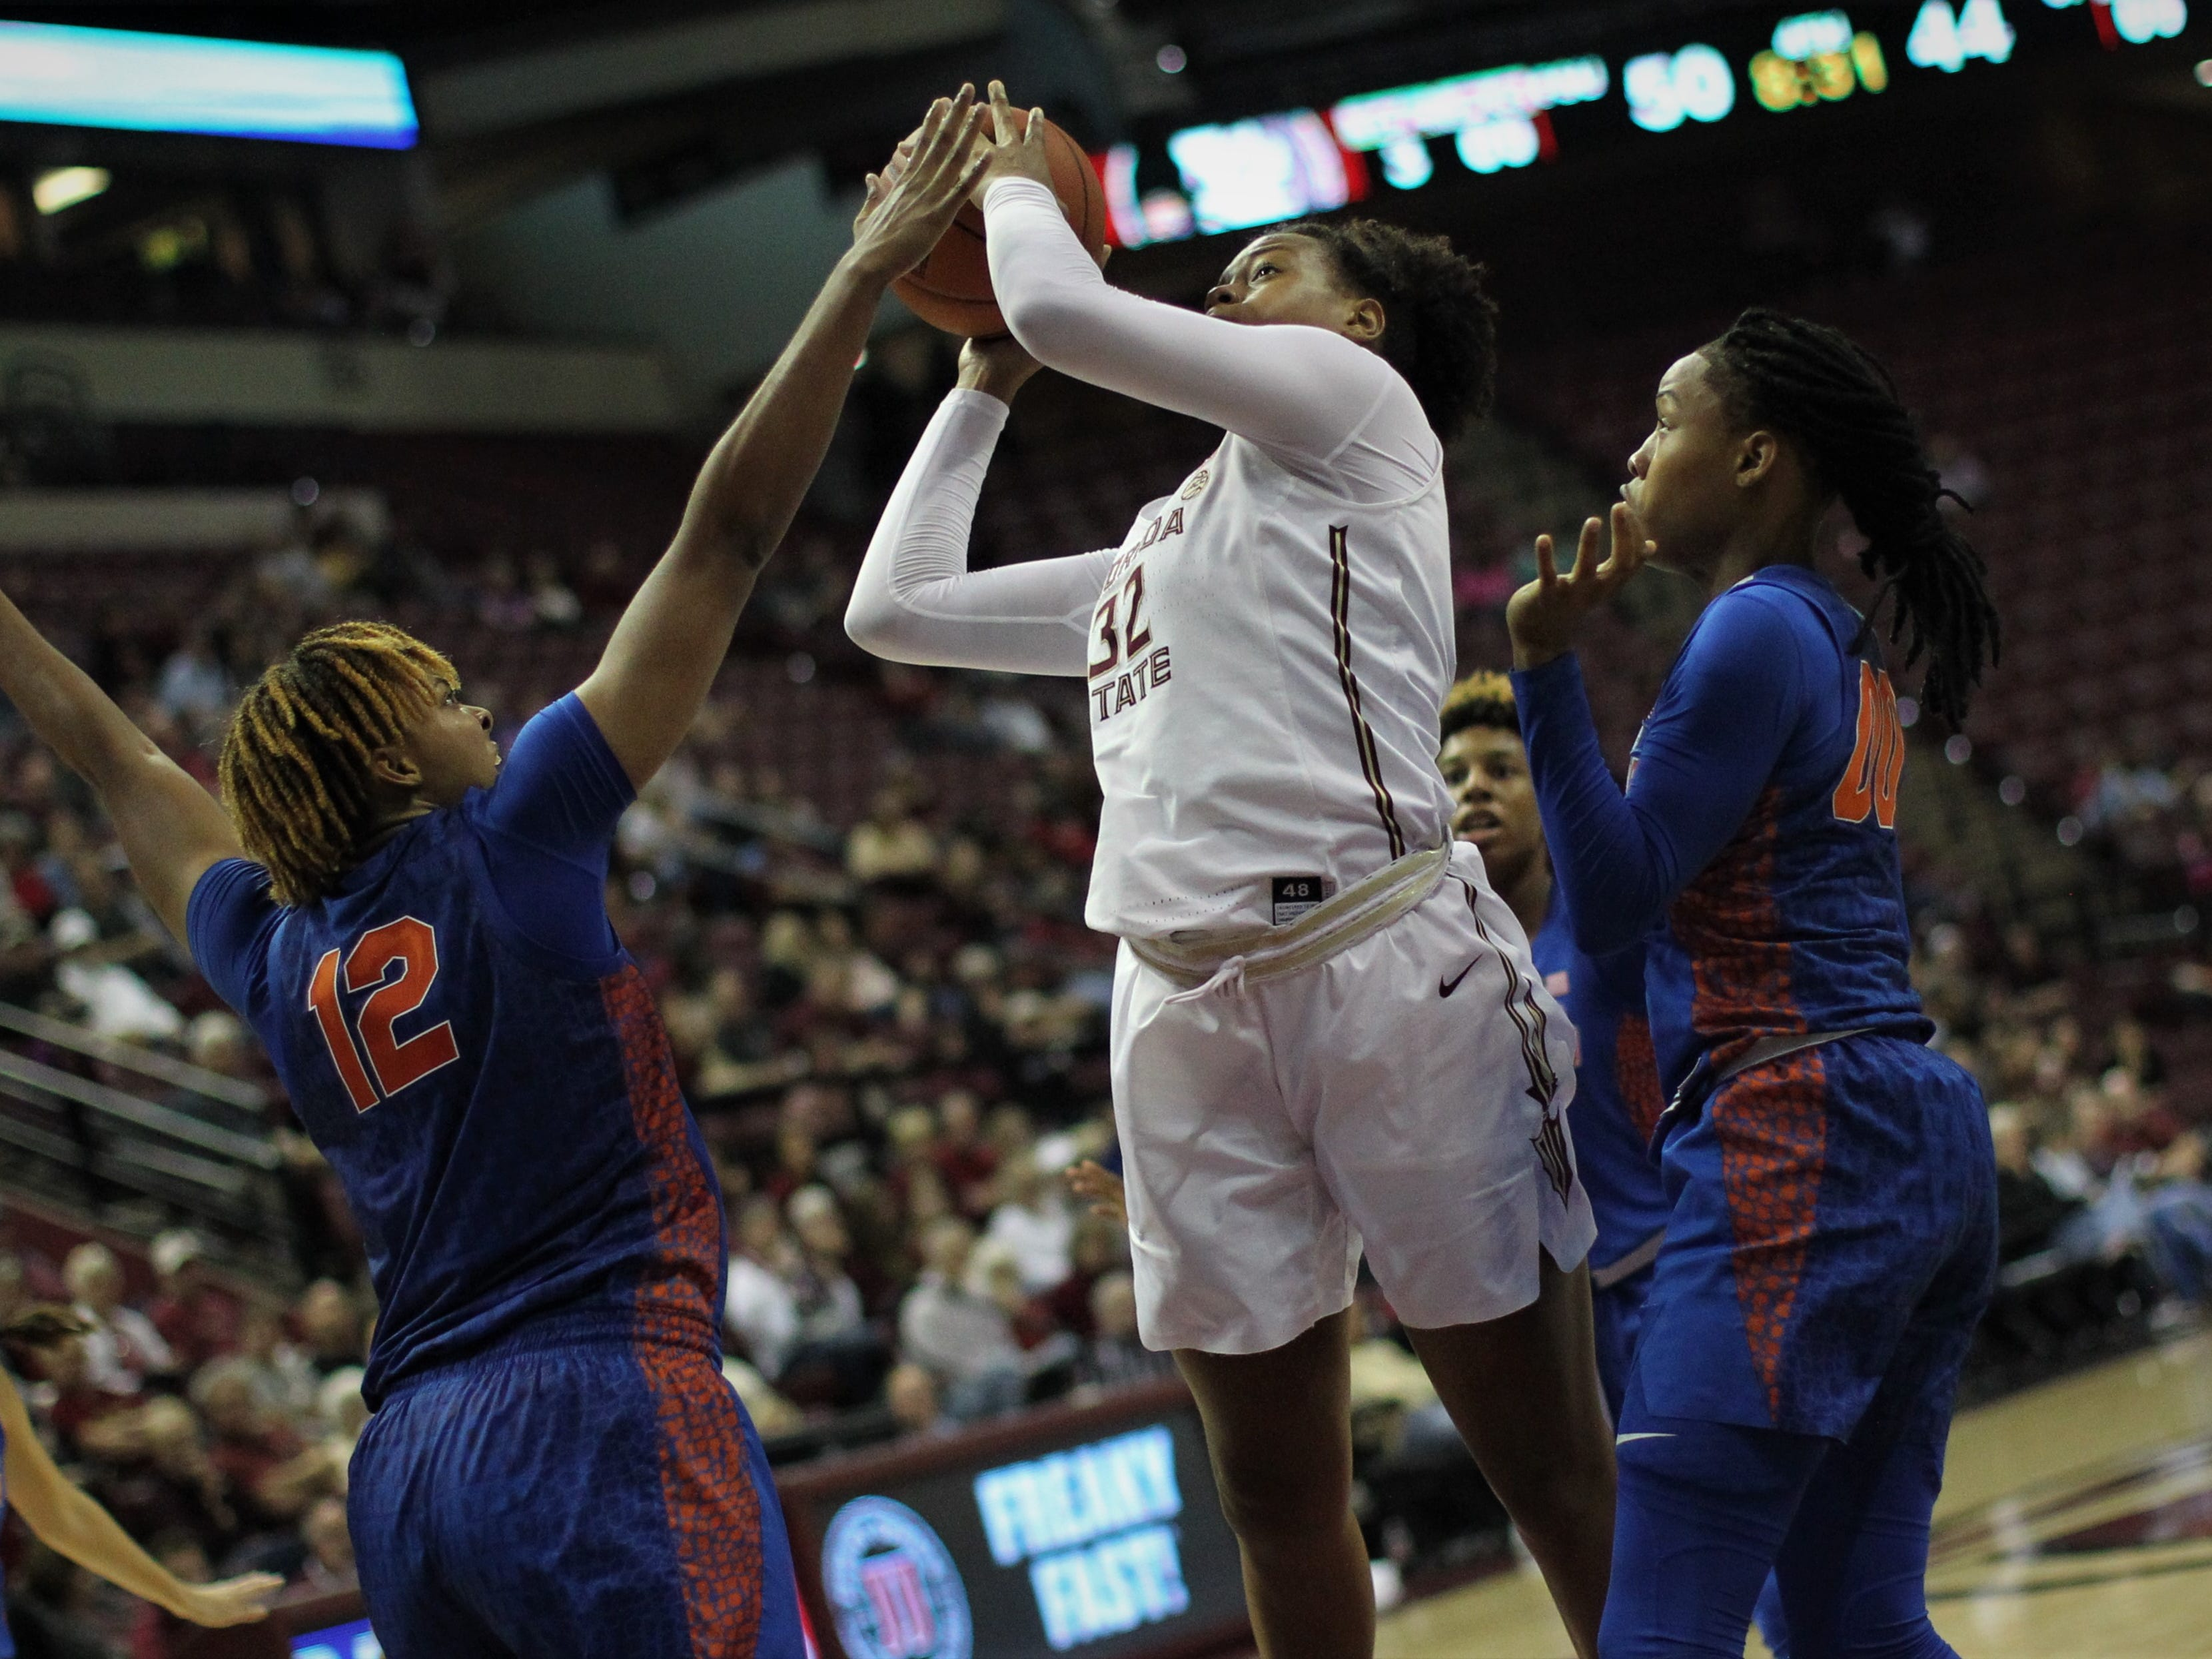 Florida State freshman Valencia Myers goes up for a basket during the second half of the Seminoles' game against Florida at the Tucker Civic Center on Nov. 11, 2018.